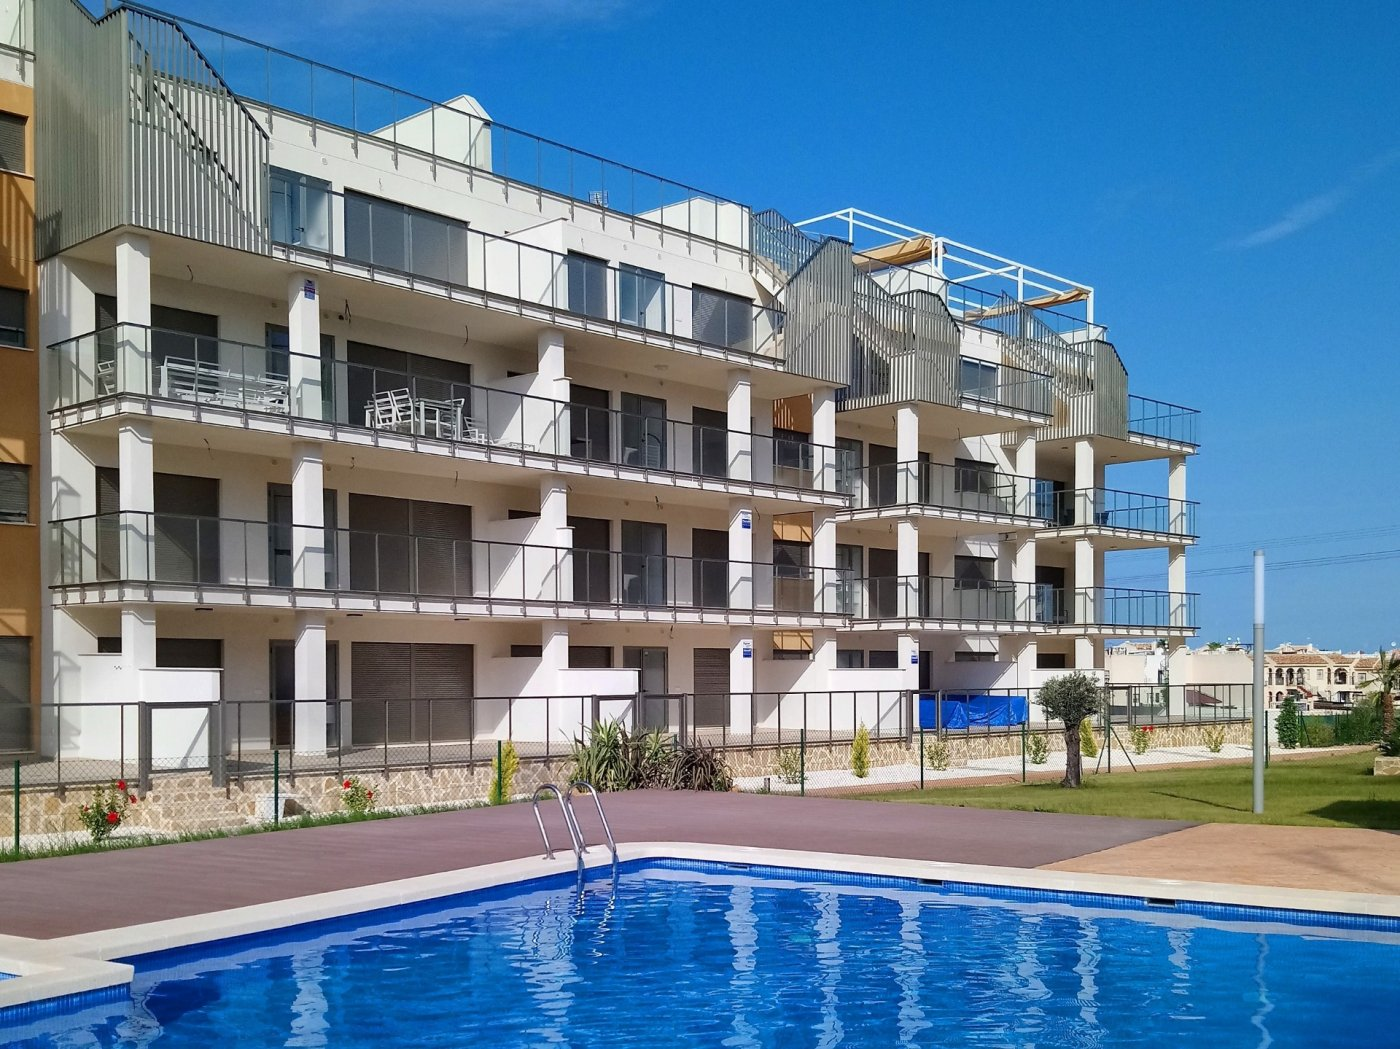 Appartement te koop in Orihuela-Costa (Spanje, Costa Blanca)